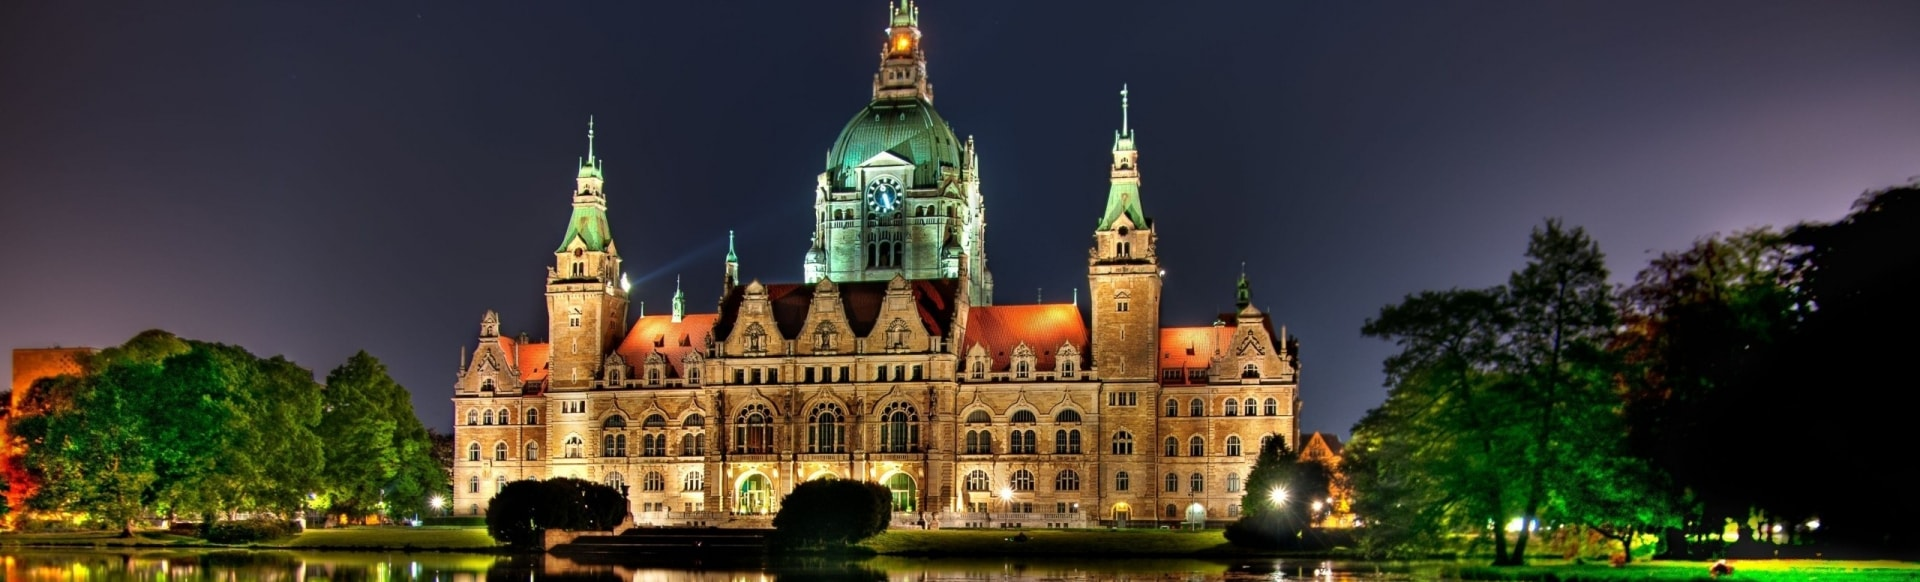 Germany student visa consultant in Ahmedabad